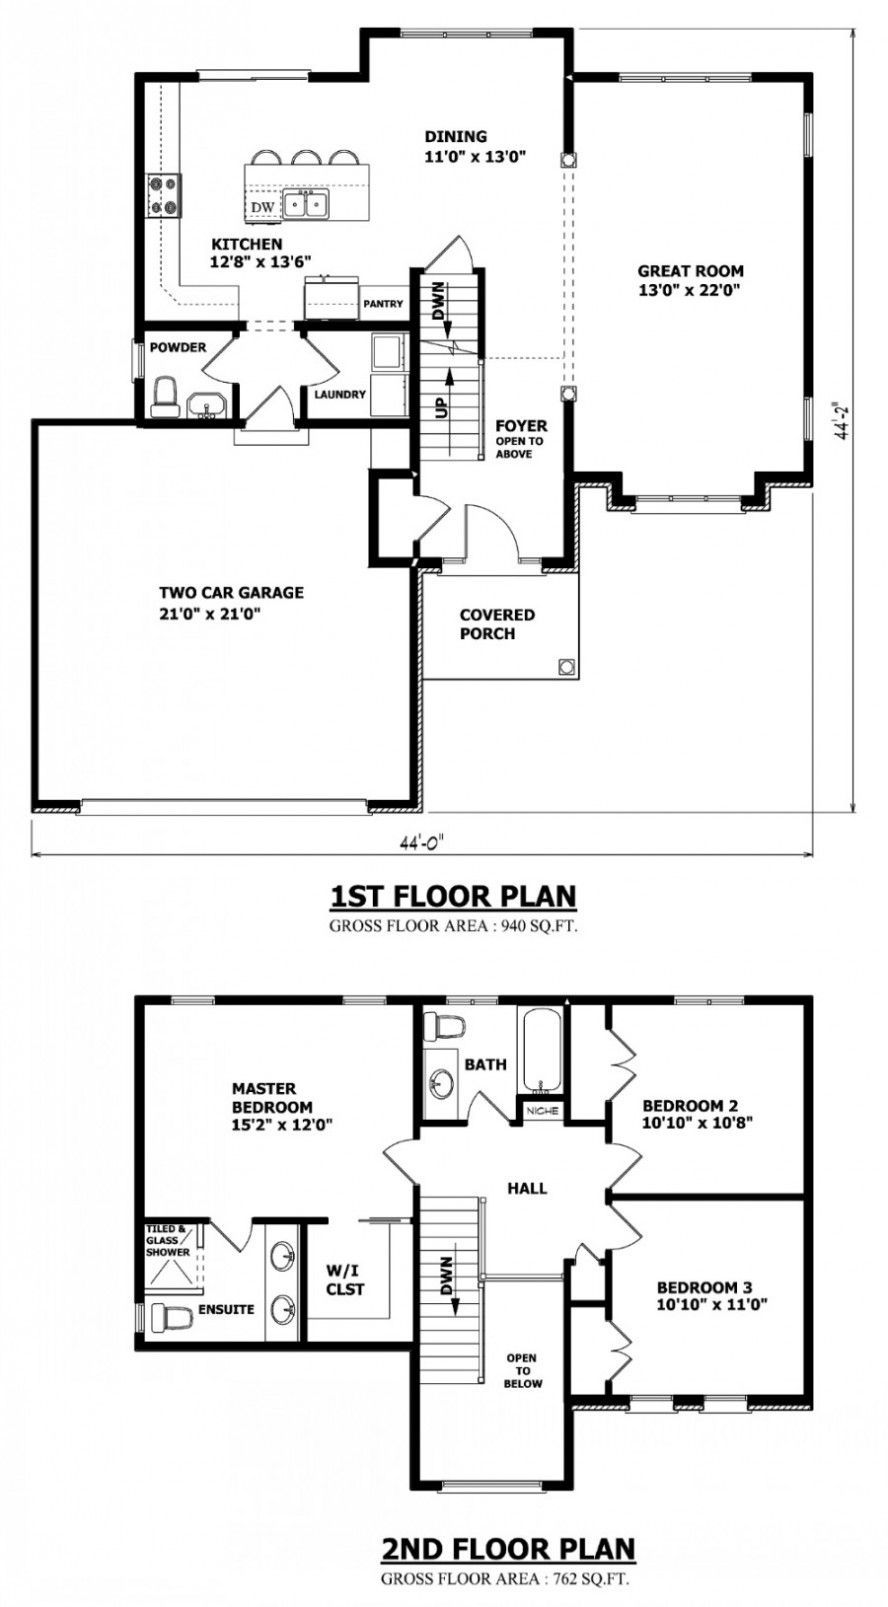 39 New Style Small Two Story House Plans With Basement In 2020 Two Story House Plans Two Storey House Plans Double Storey House Plans